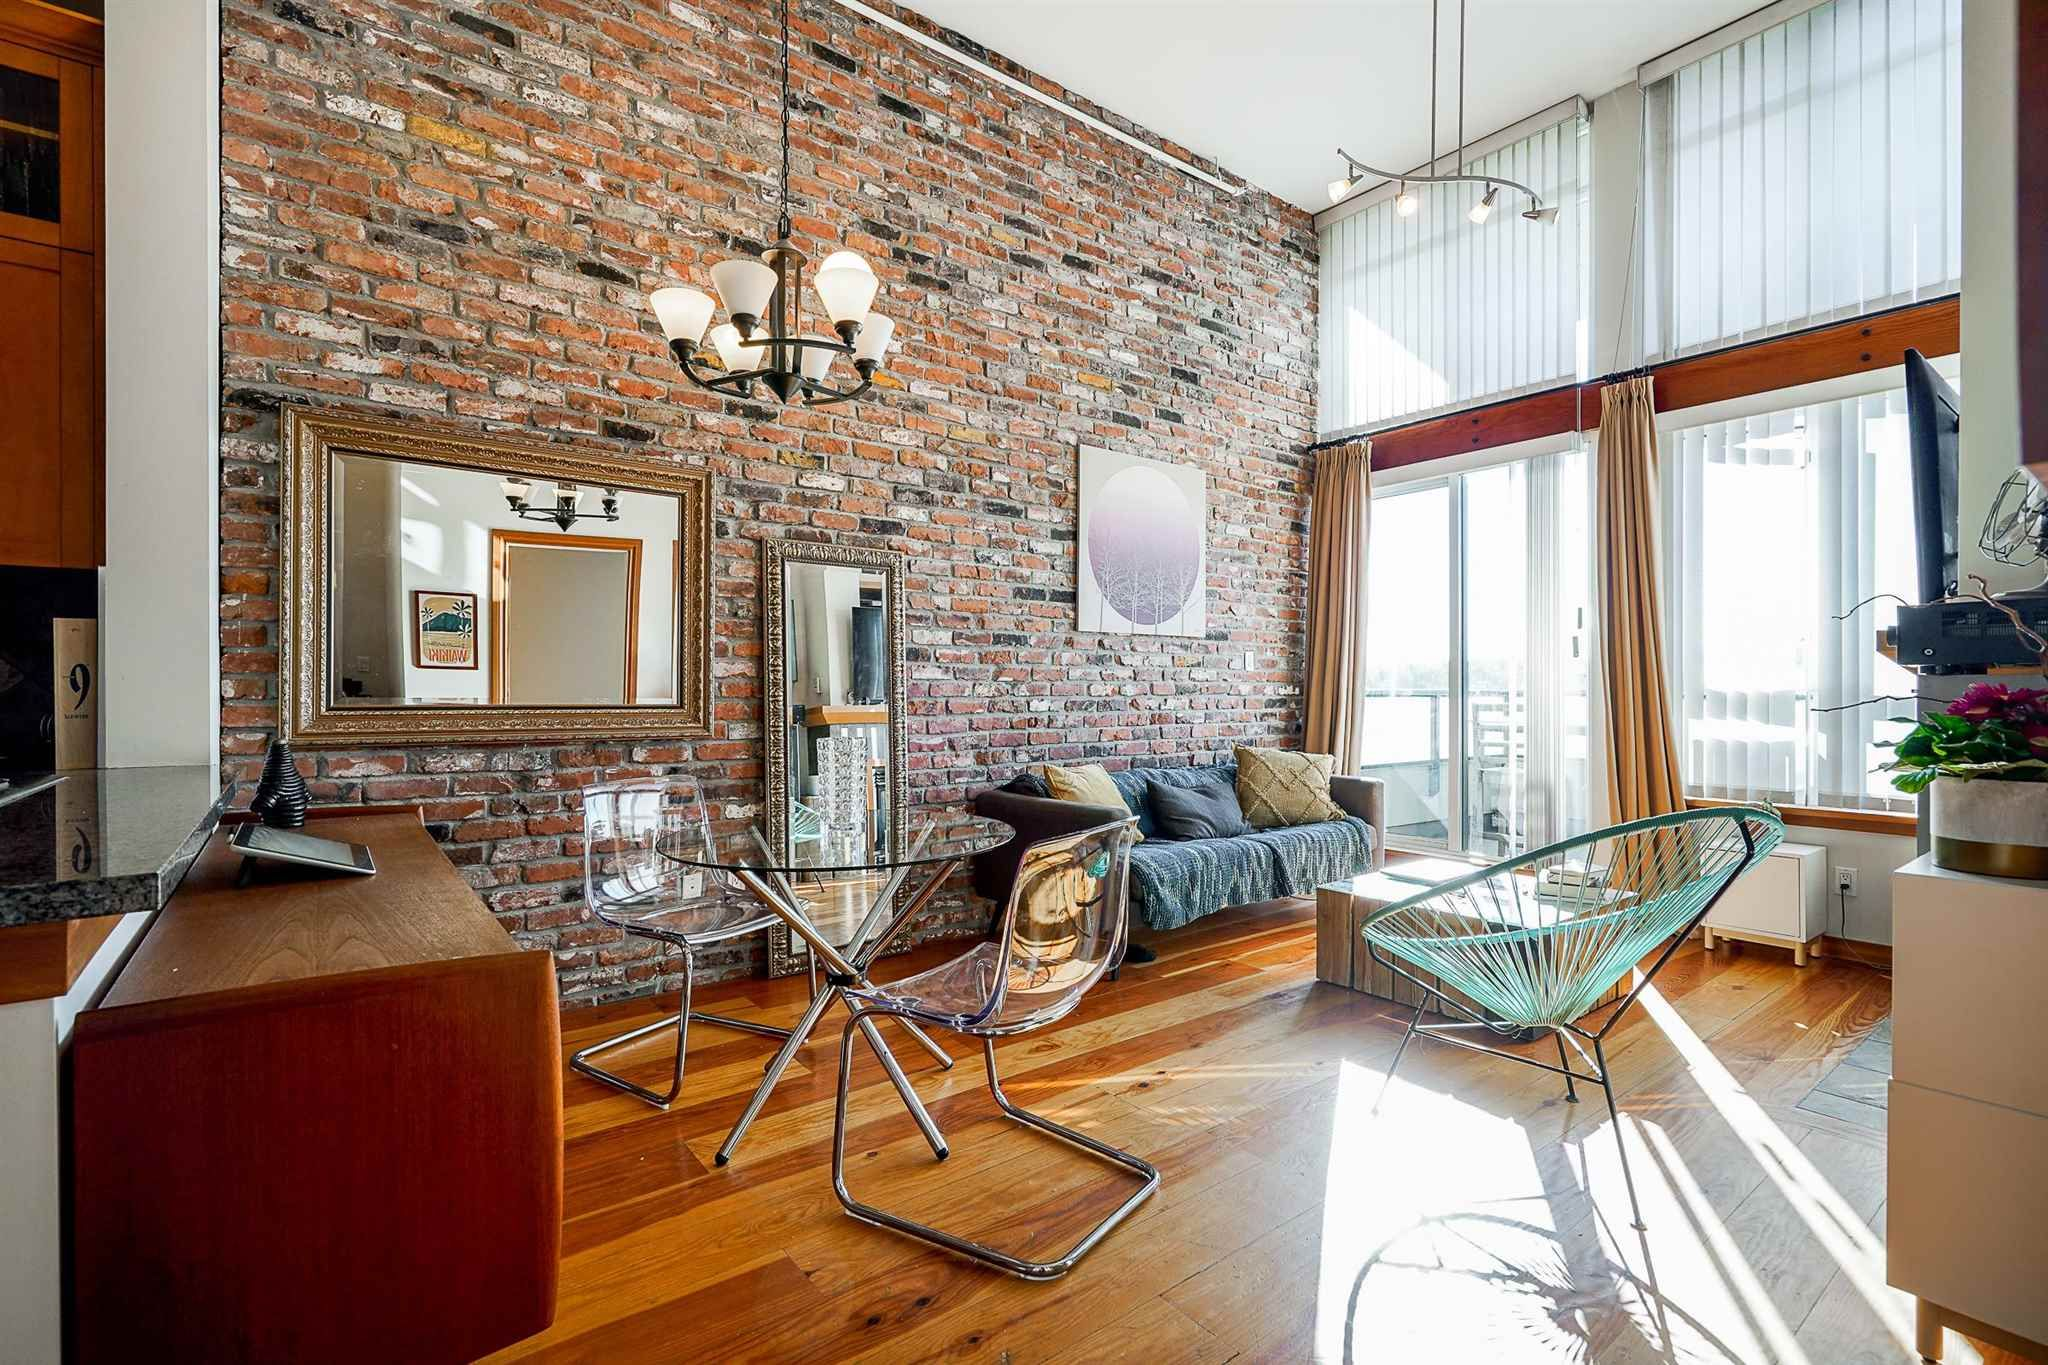 """Main Photo: Map location: 602 7 RIALTO Court in New Westminster: Quay Condo for sale in """"Murano Lofts"""" : MLS®# R2595994"""